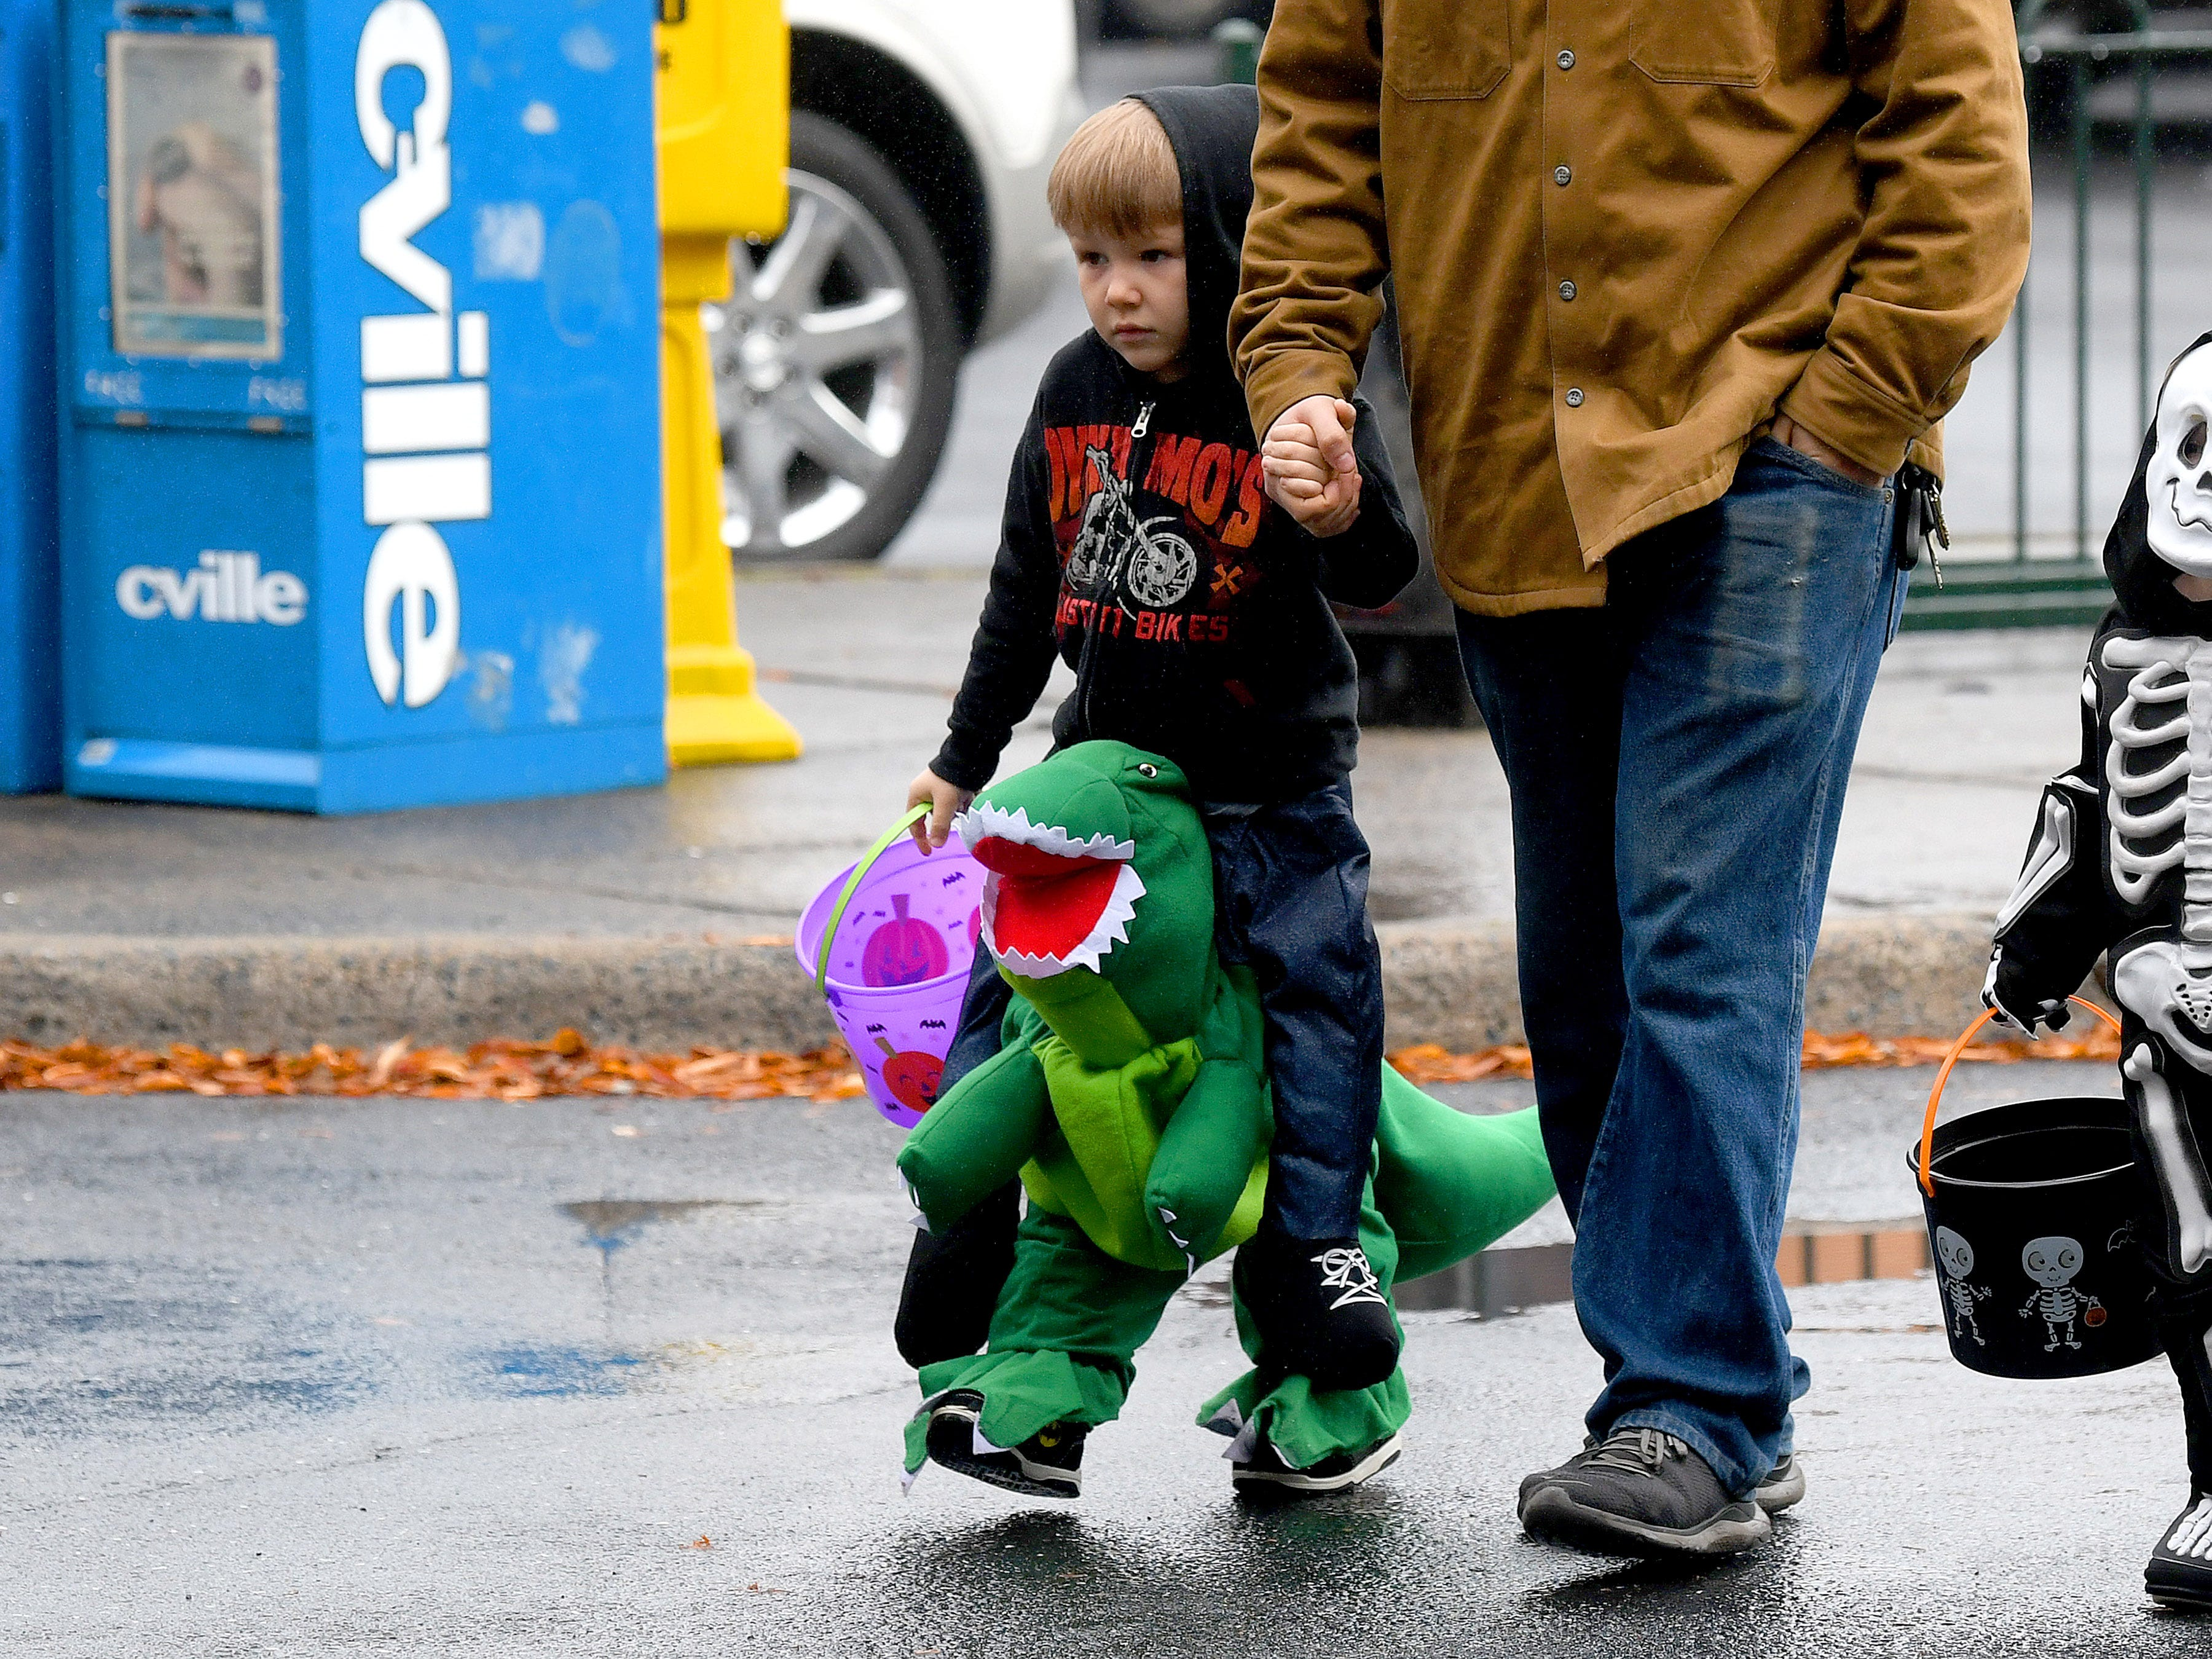 One trick-or-treater rides a dinosaur while trick-or-treating in downtown Staunton on Saturday, Oct. 27, 2018.